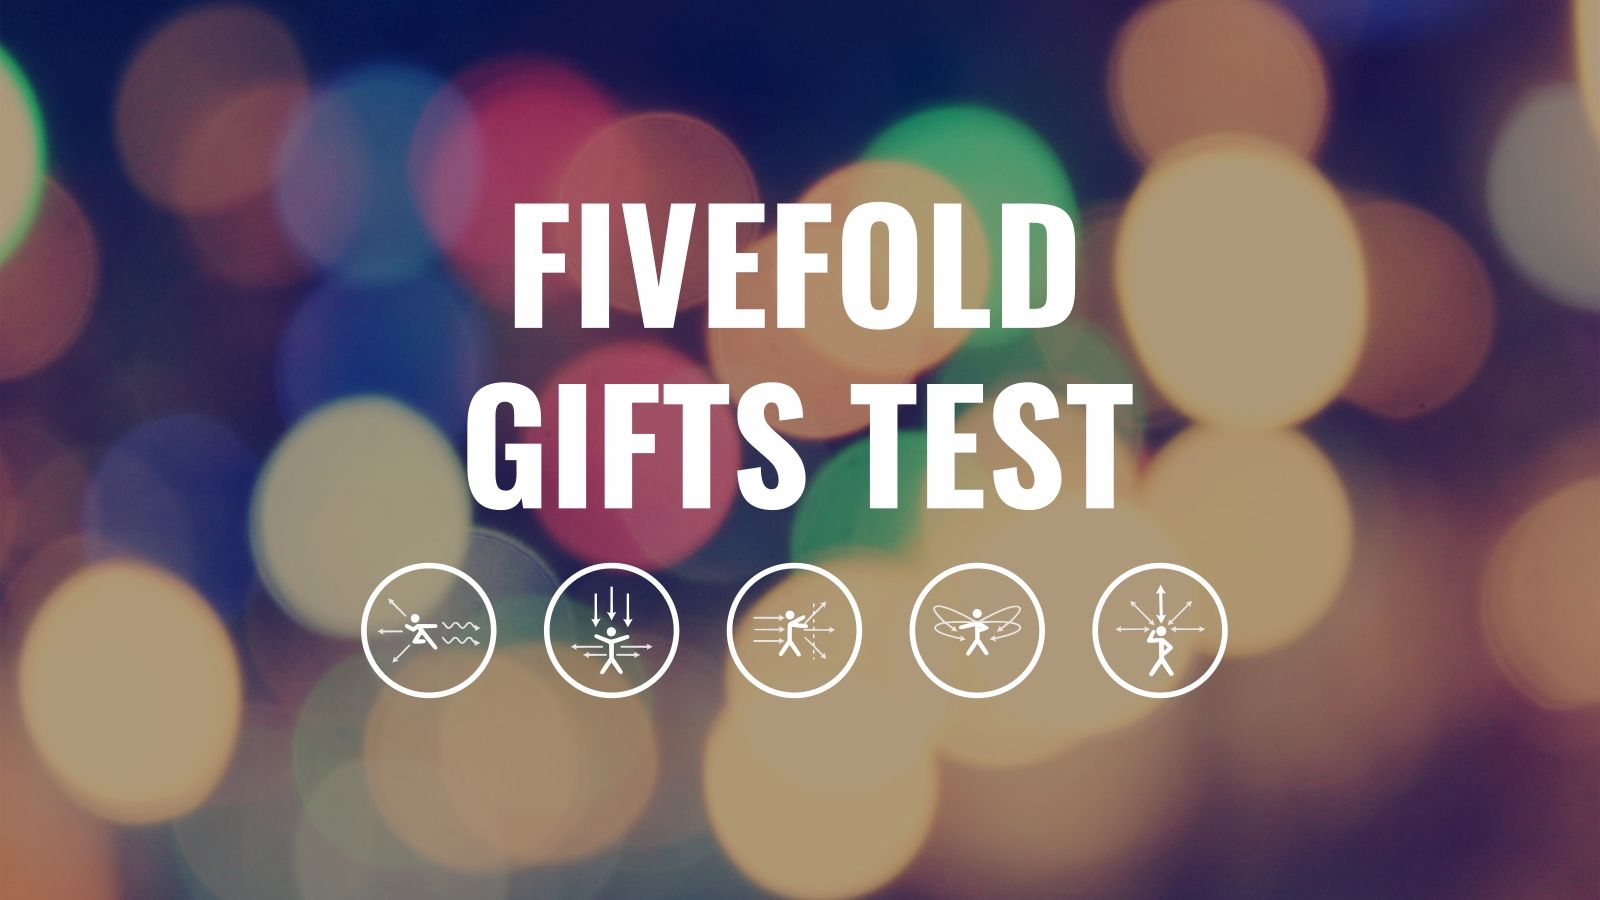 FiveFold Gifts Test